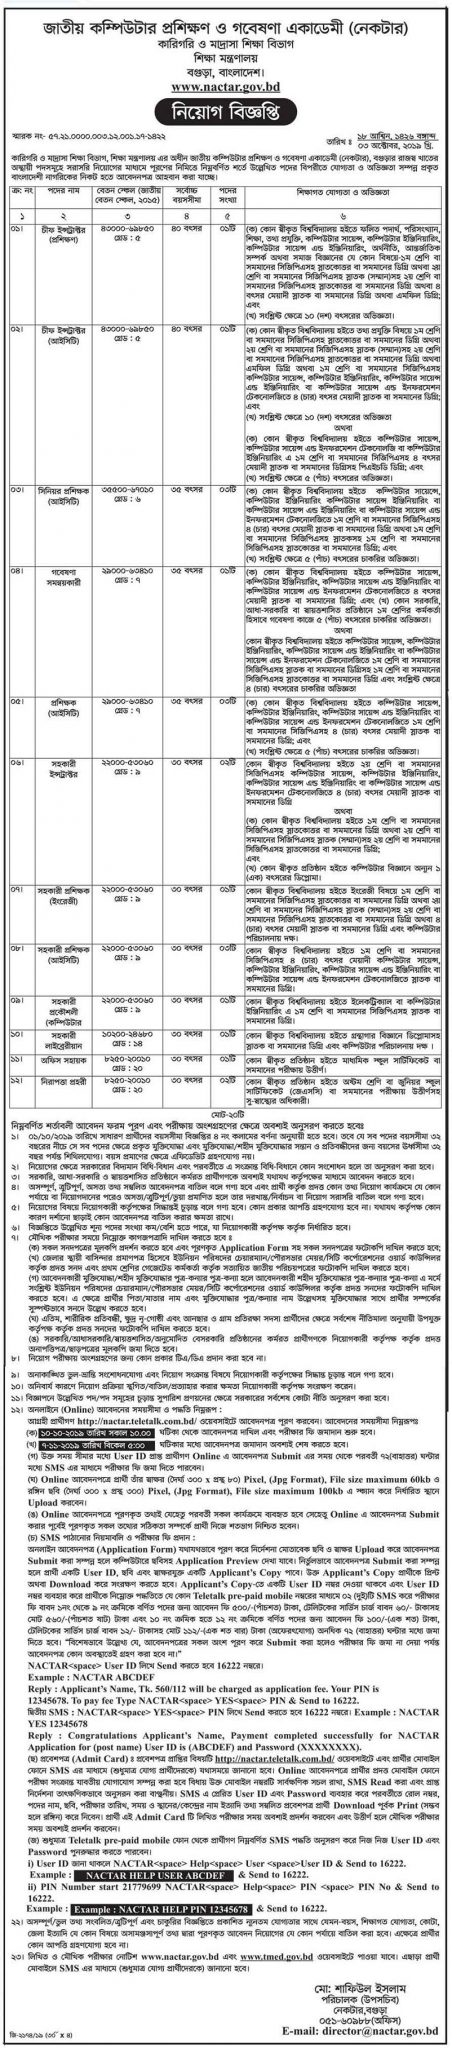 Bangladesh Madrasah Education Board Job Circular 2019